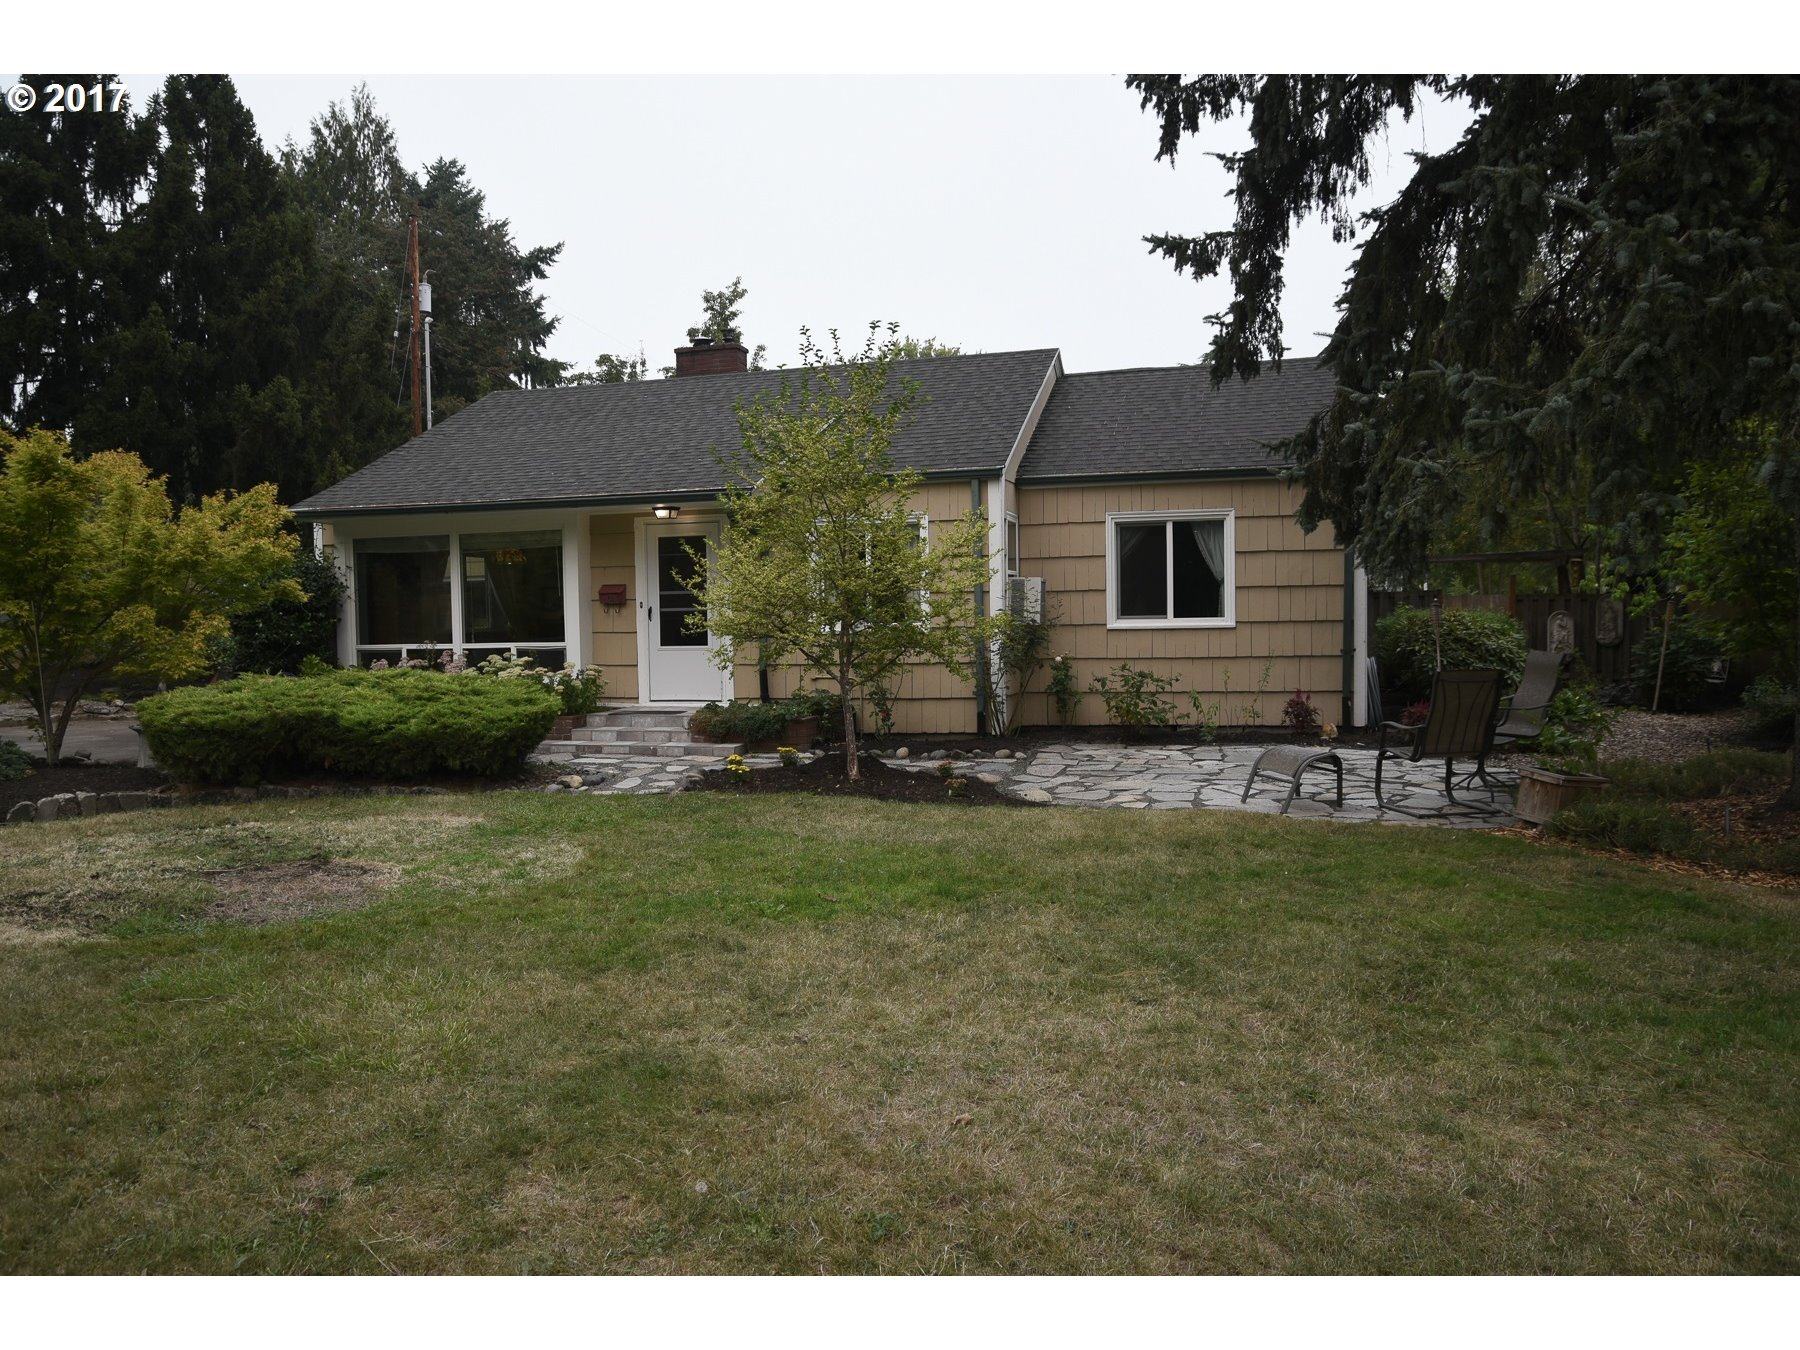 LOCATION LOCATION LOCATION! Well maintained property,move in ready! Hardwood floors throughout the house, skylight on master bed. Great back yard,enjoy peaceful fish pond,garden, and patio for gatherings. Spacious corner lot, blocks away from New Season, Powell's & Max Line* MUST SEE*Appointment is required*Open House Sat 1-3PM & Sun 1-3